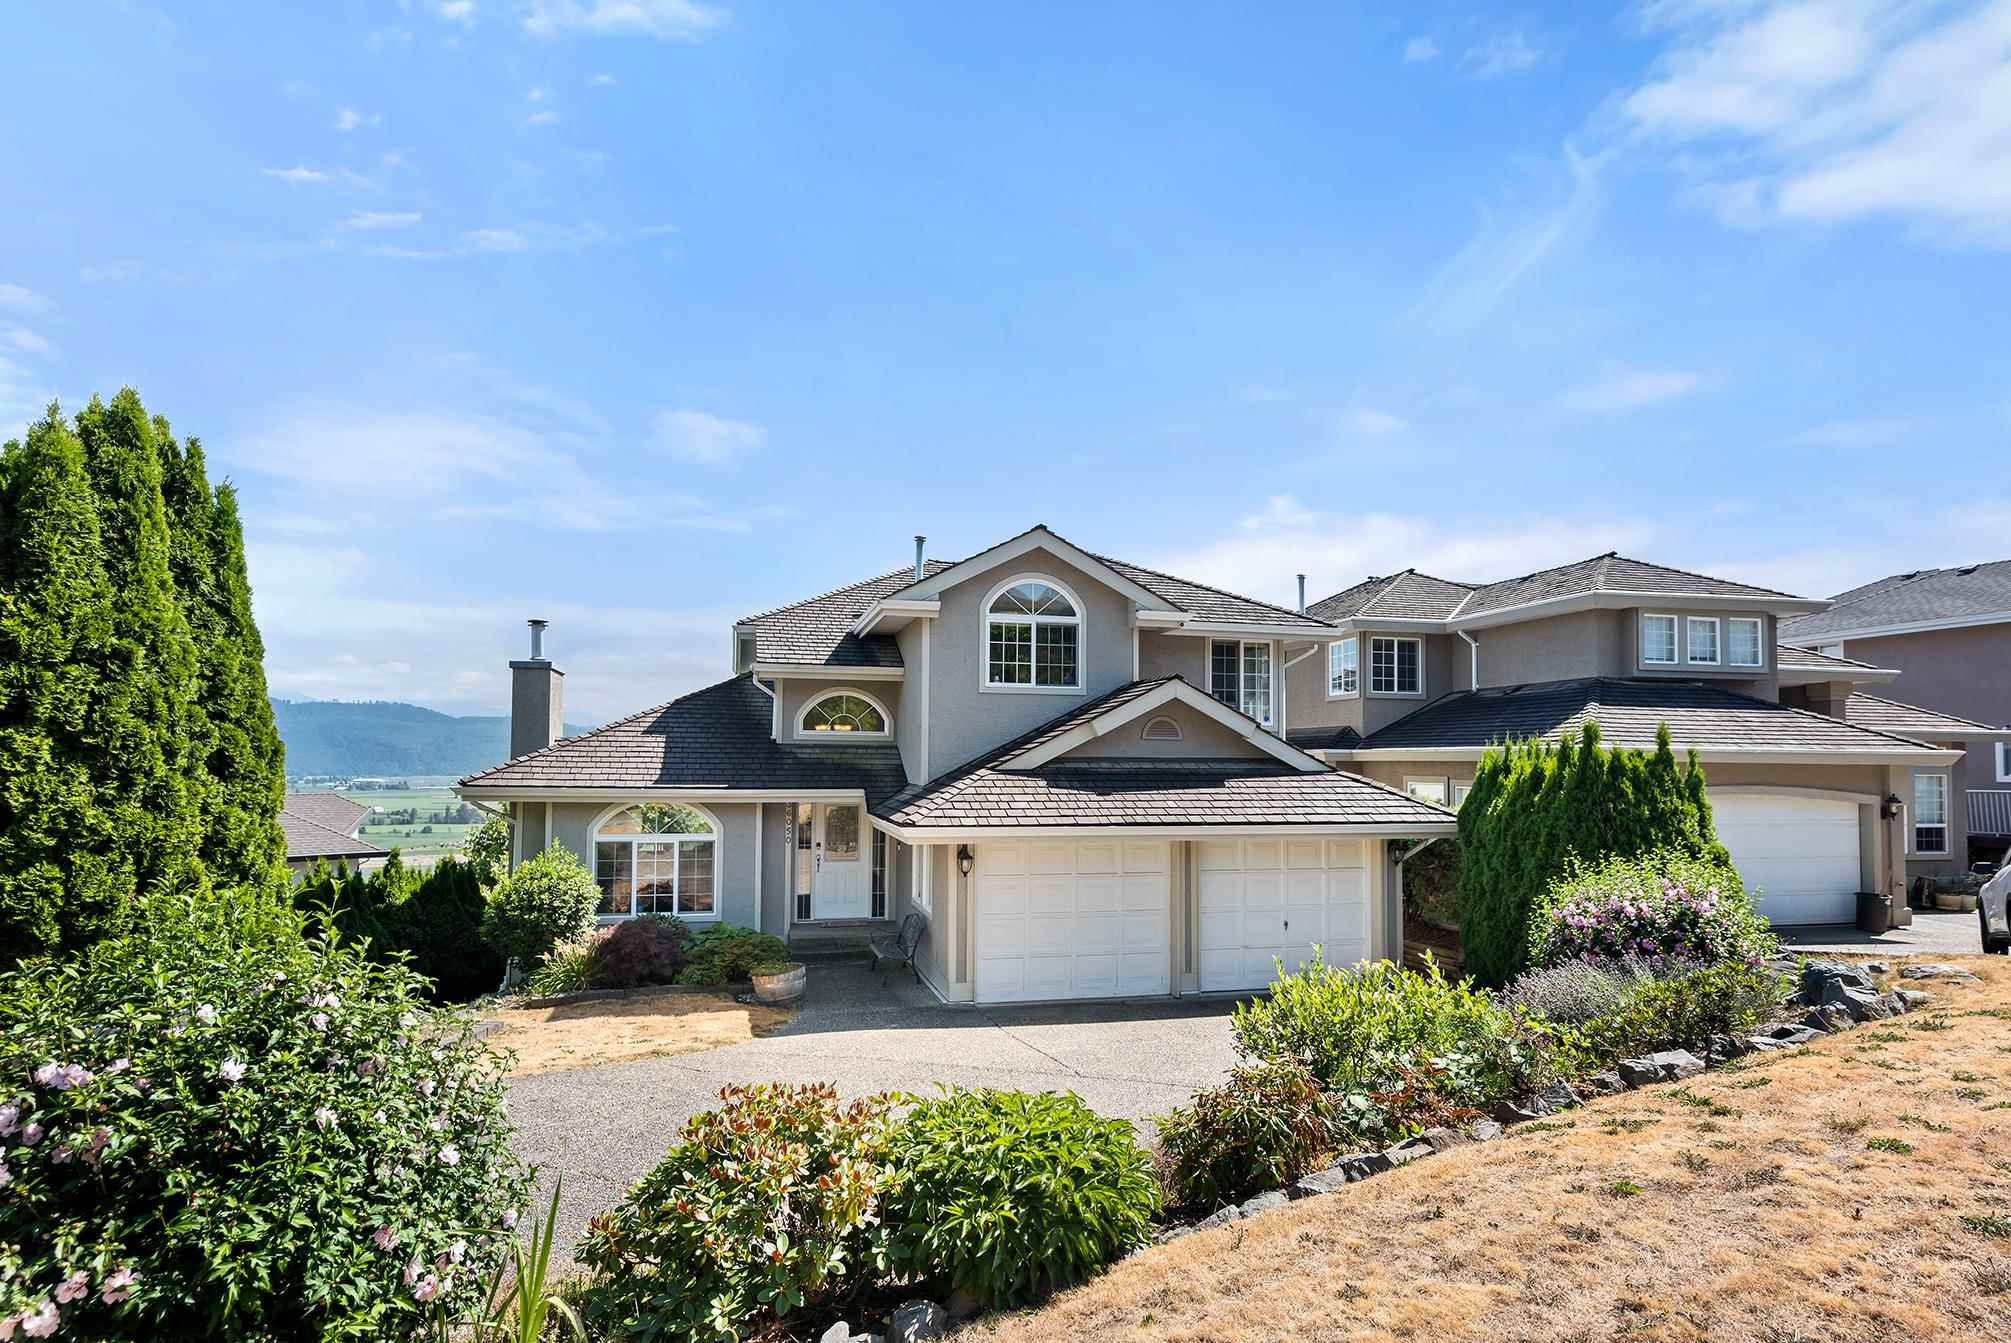 36050 REGAL PARKWAY - Abbotsford East House/Single Family for sale, 5 Bedrooms (R2604817) - #1